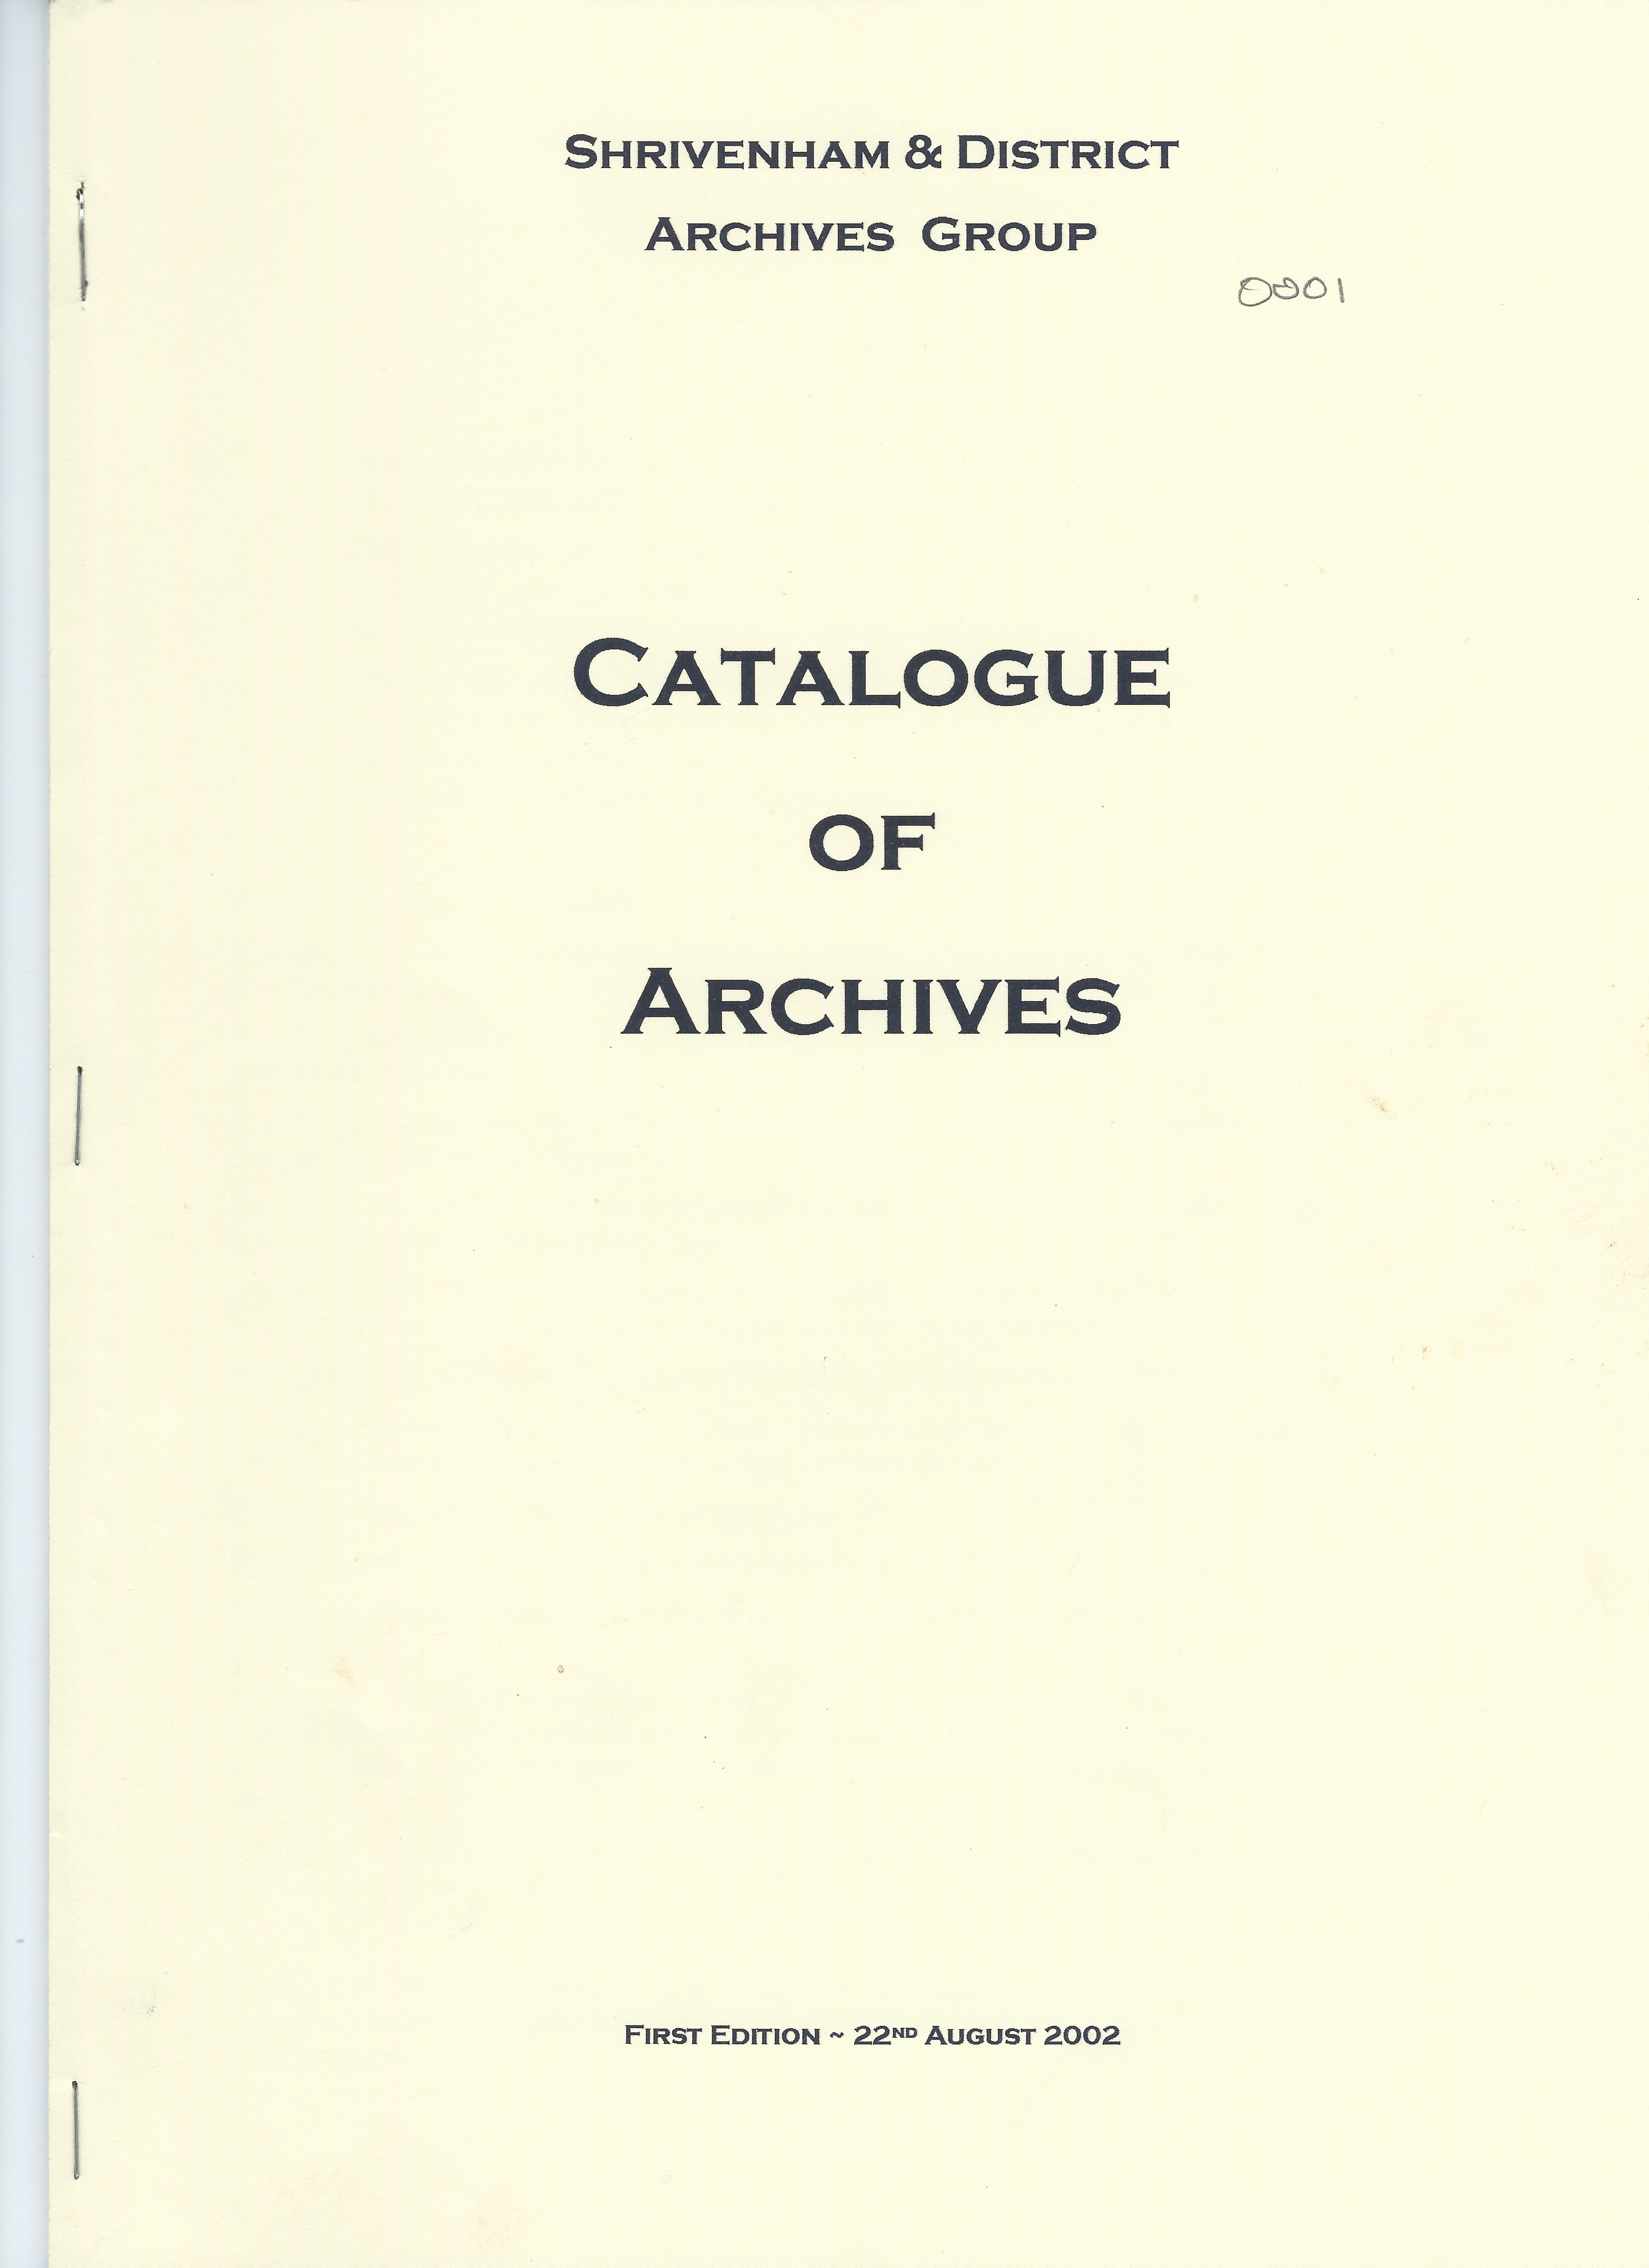 Catalogue front cover